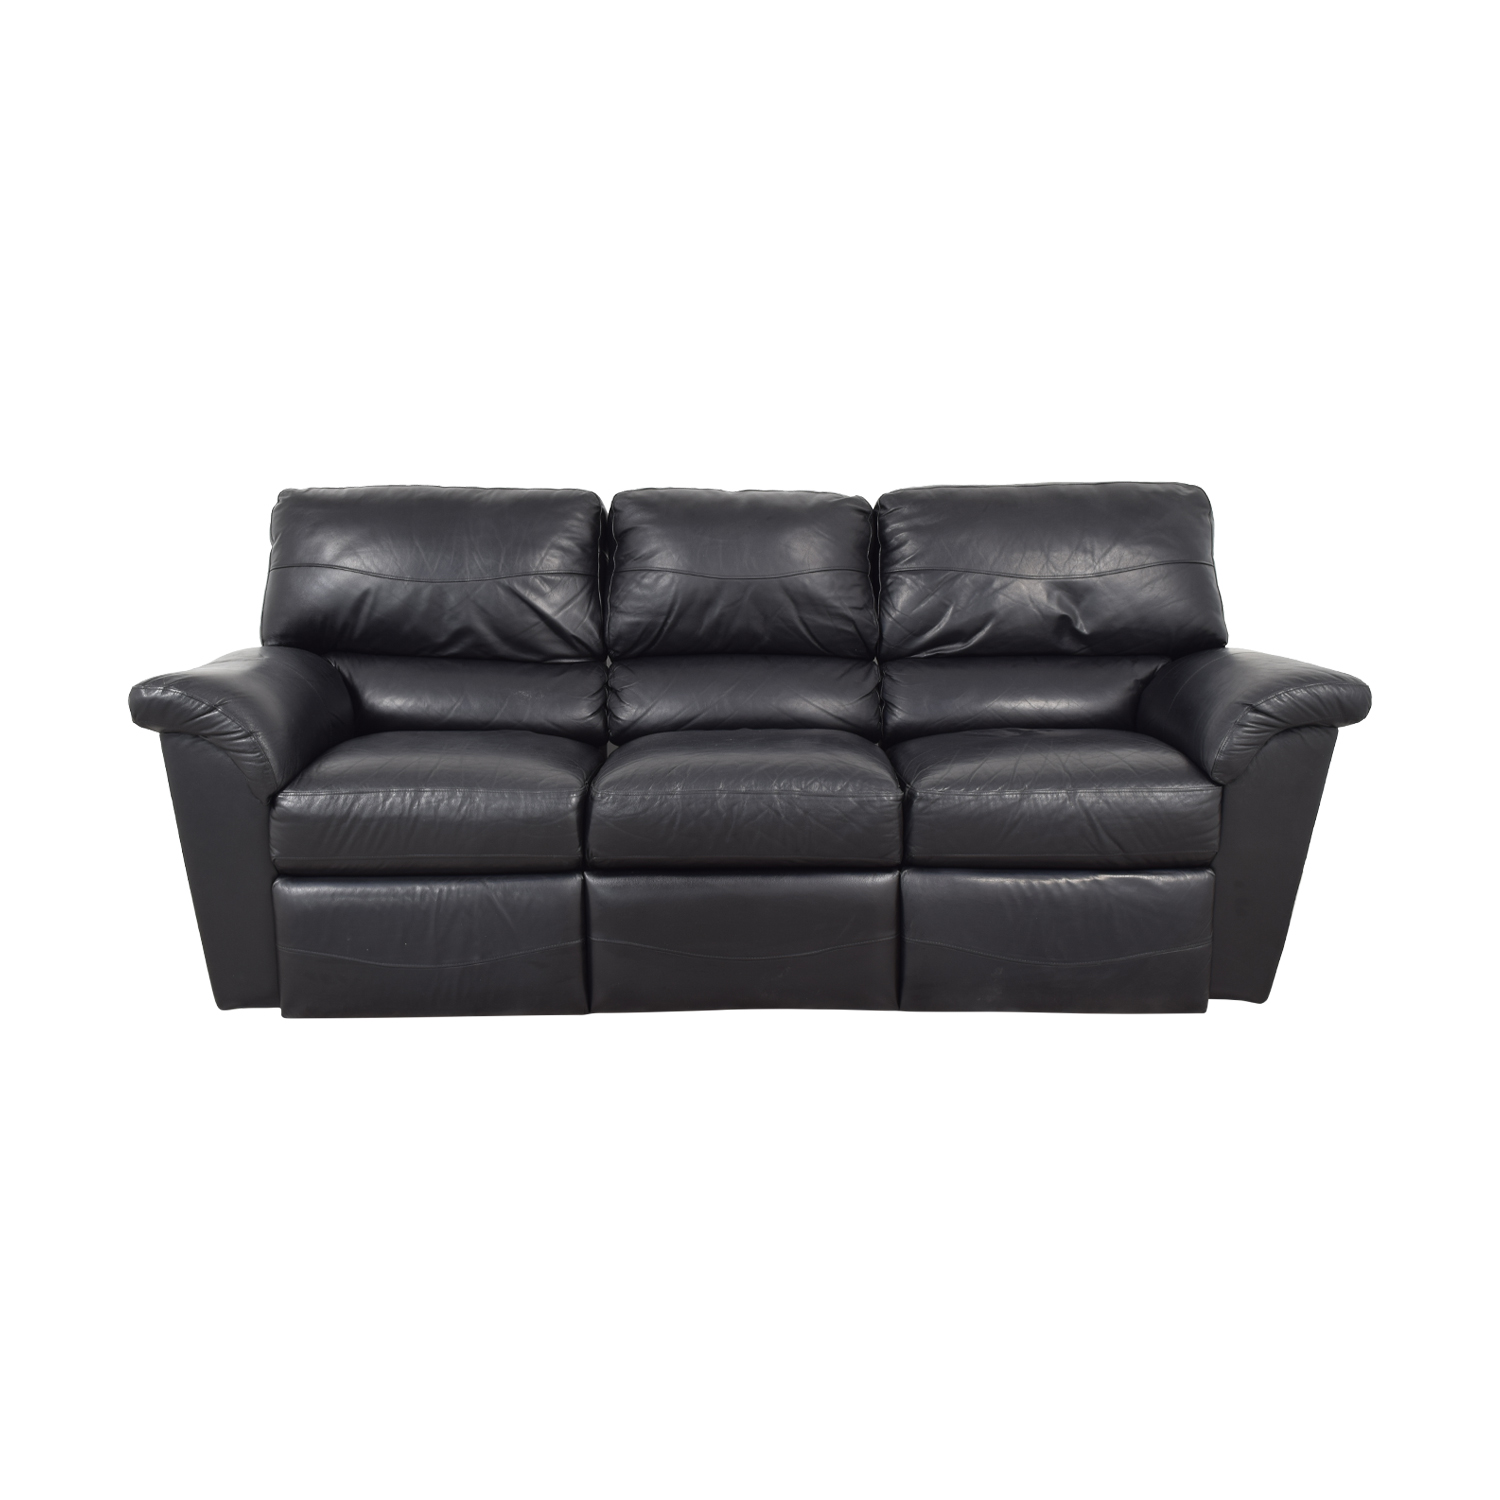 La-Z-Boy La-Z-Boy Reese Black Three-Cushion Recliner Sofa nyc